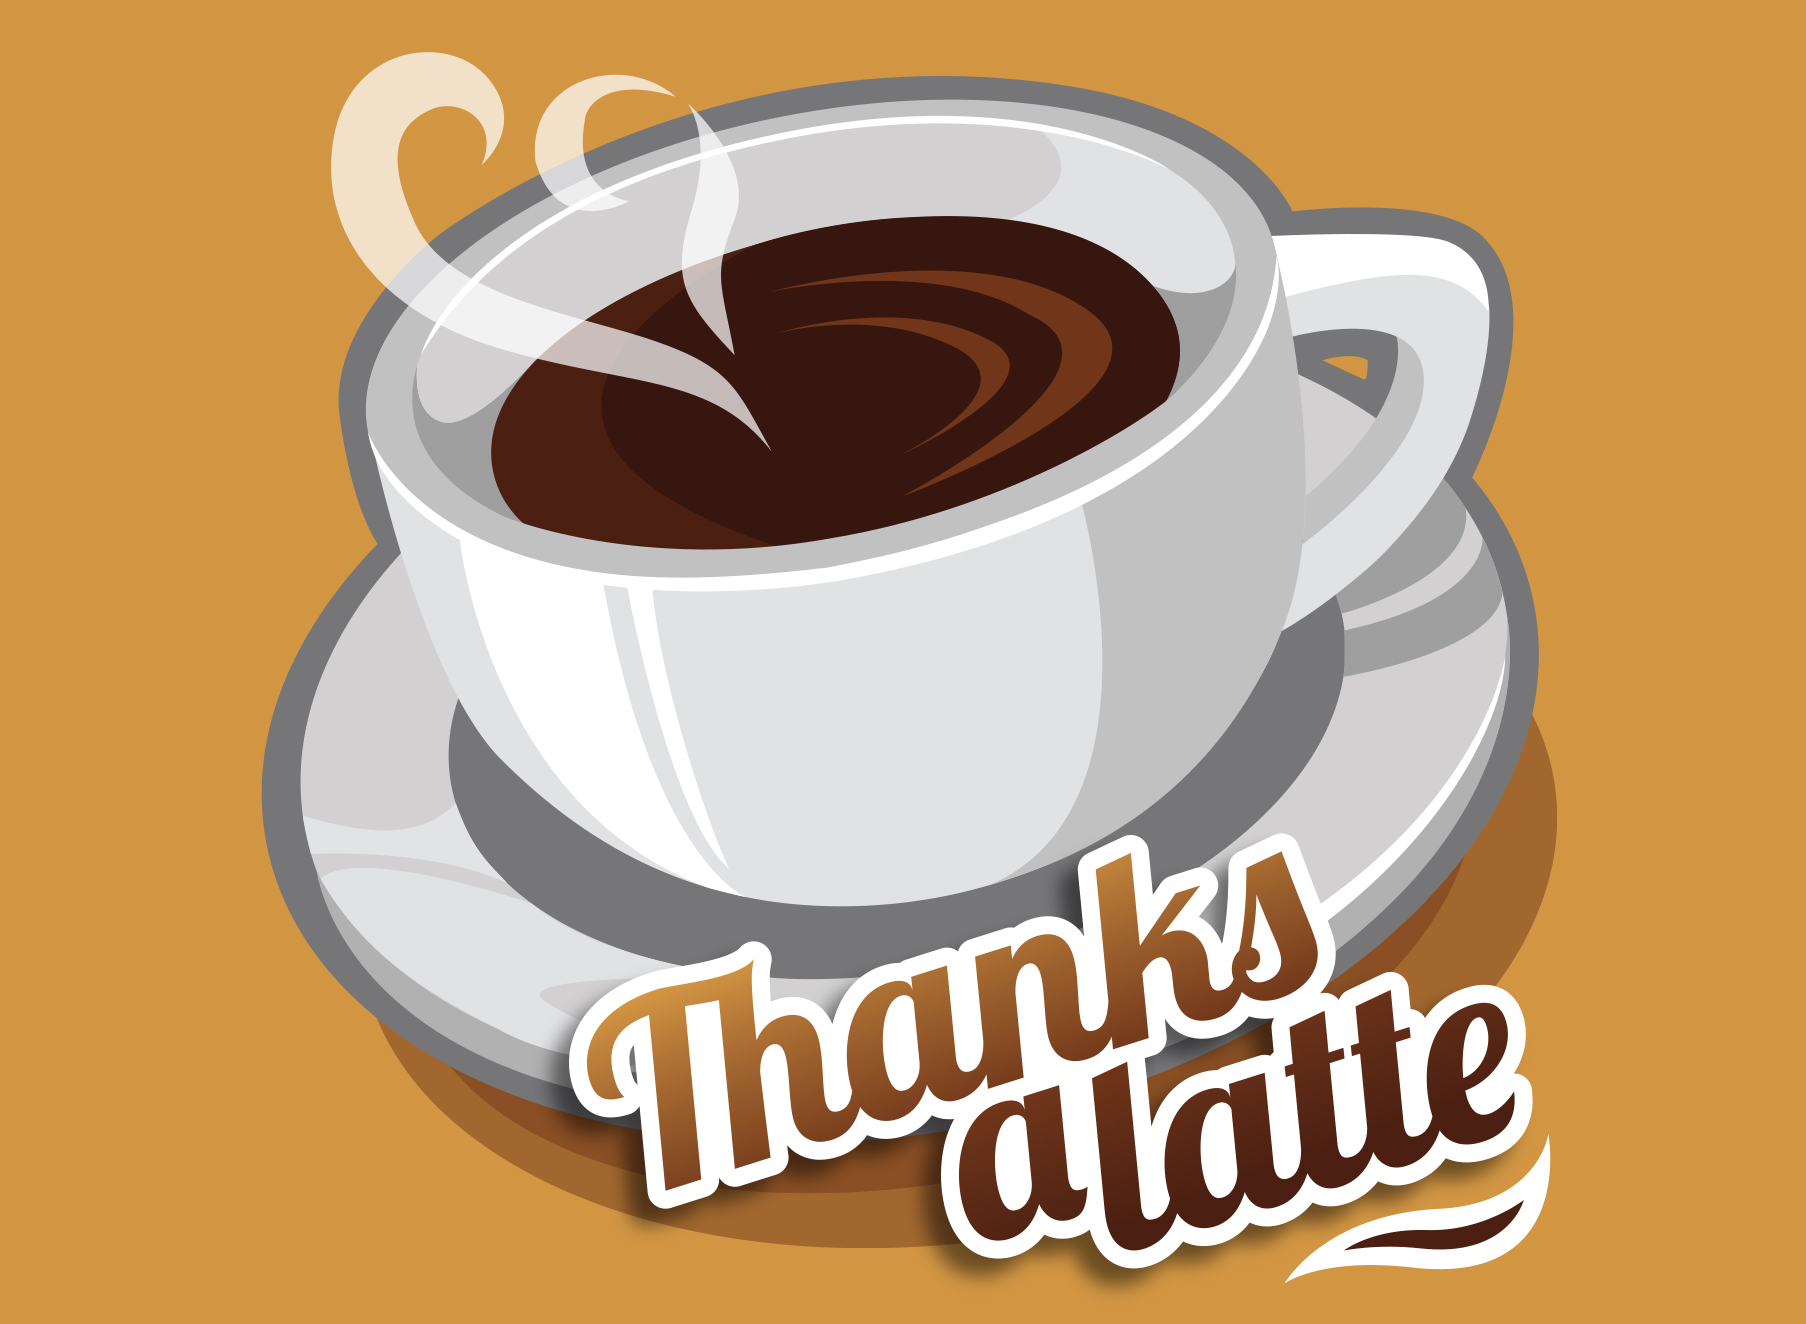 Thanks A Latte - Illustration - Folio